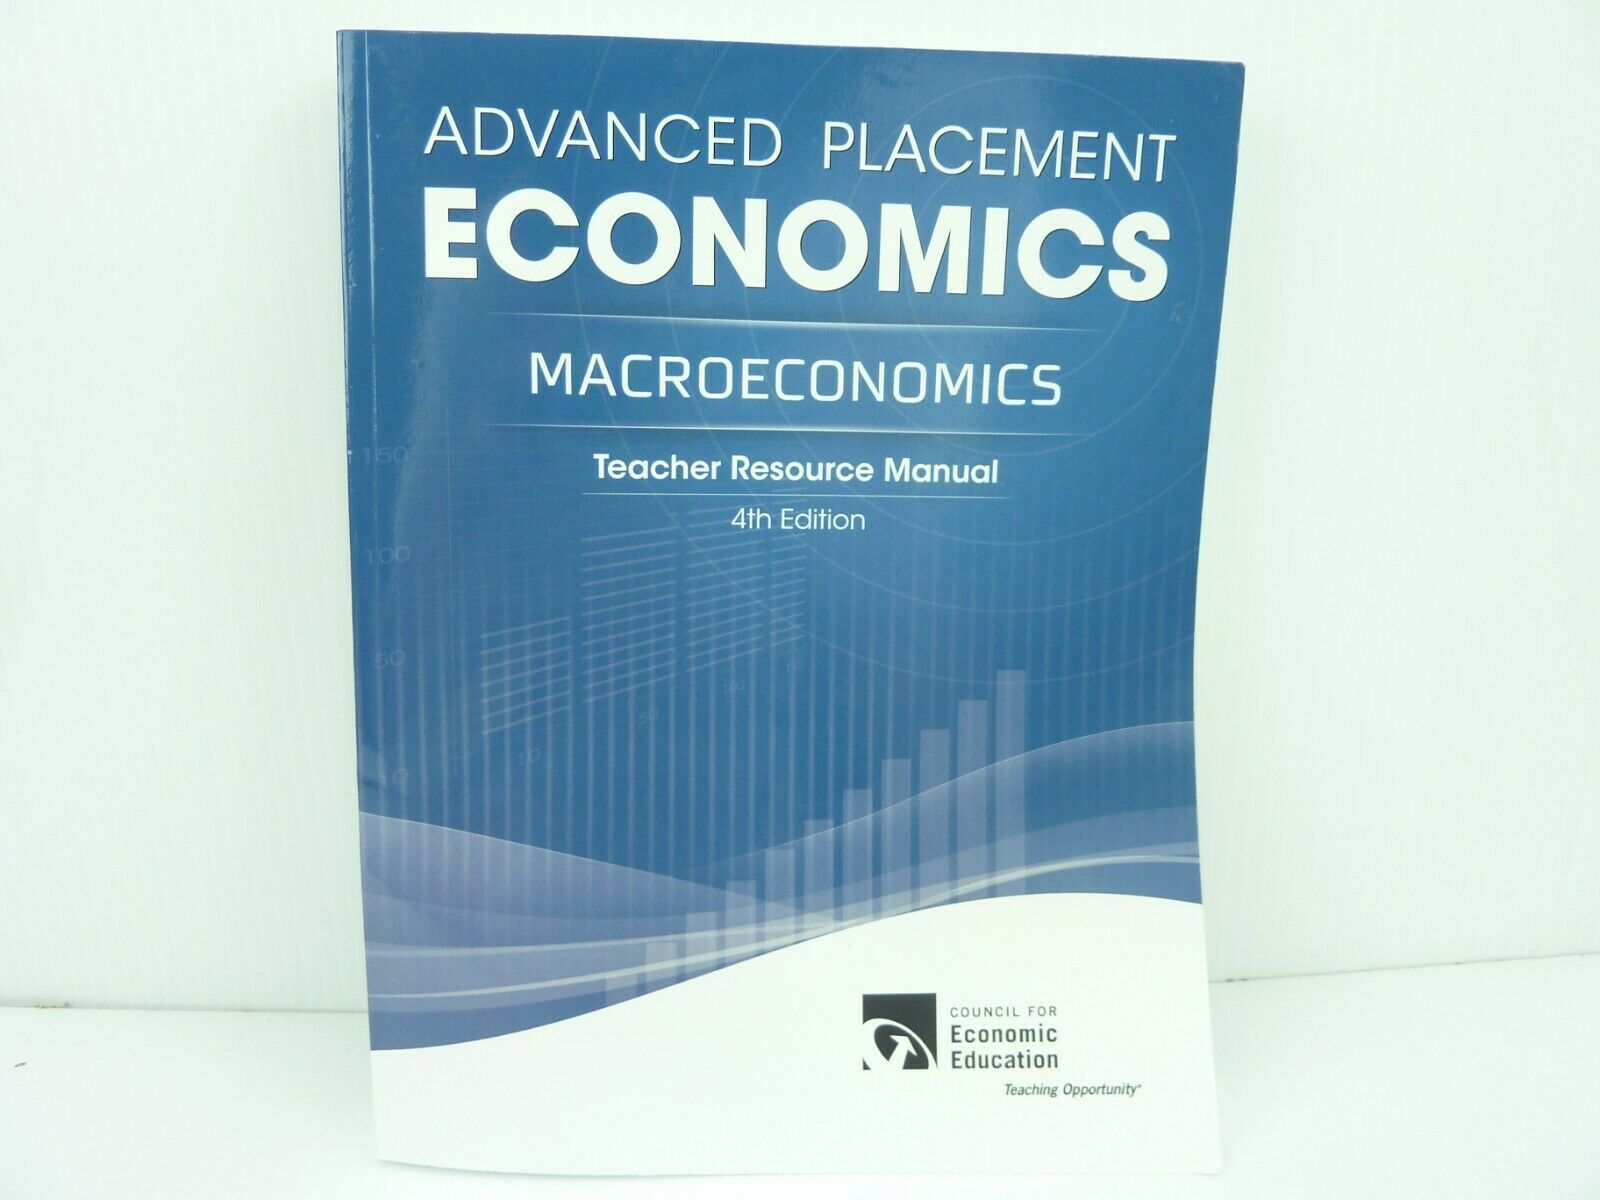 Advanced Placement Economics Macroeconomics Student Resource Manual By Margaret A Ray Trade Paperback For Sale Online Ebay